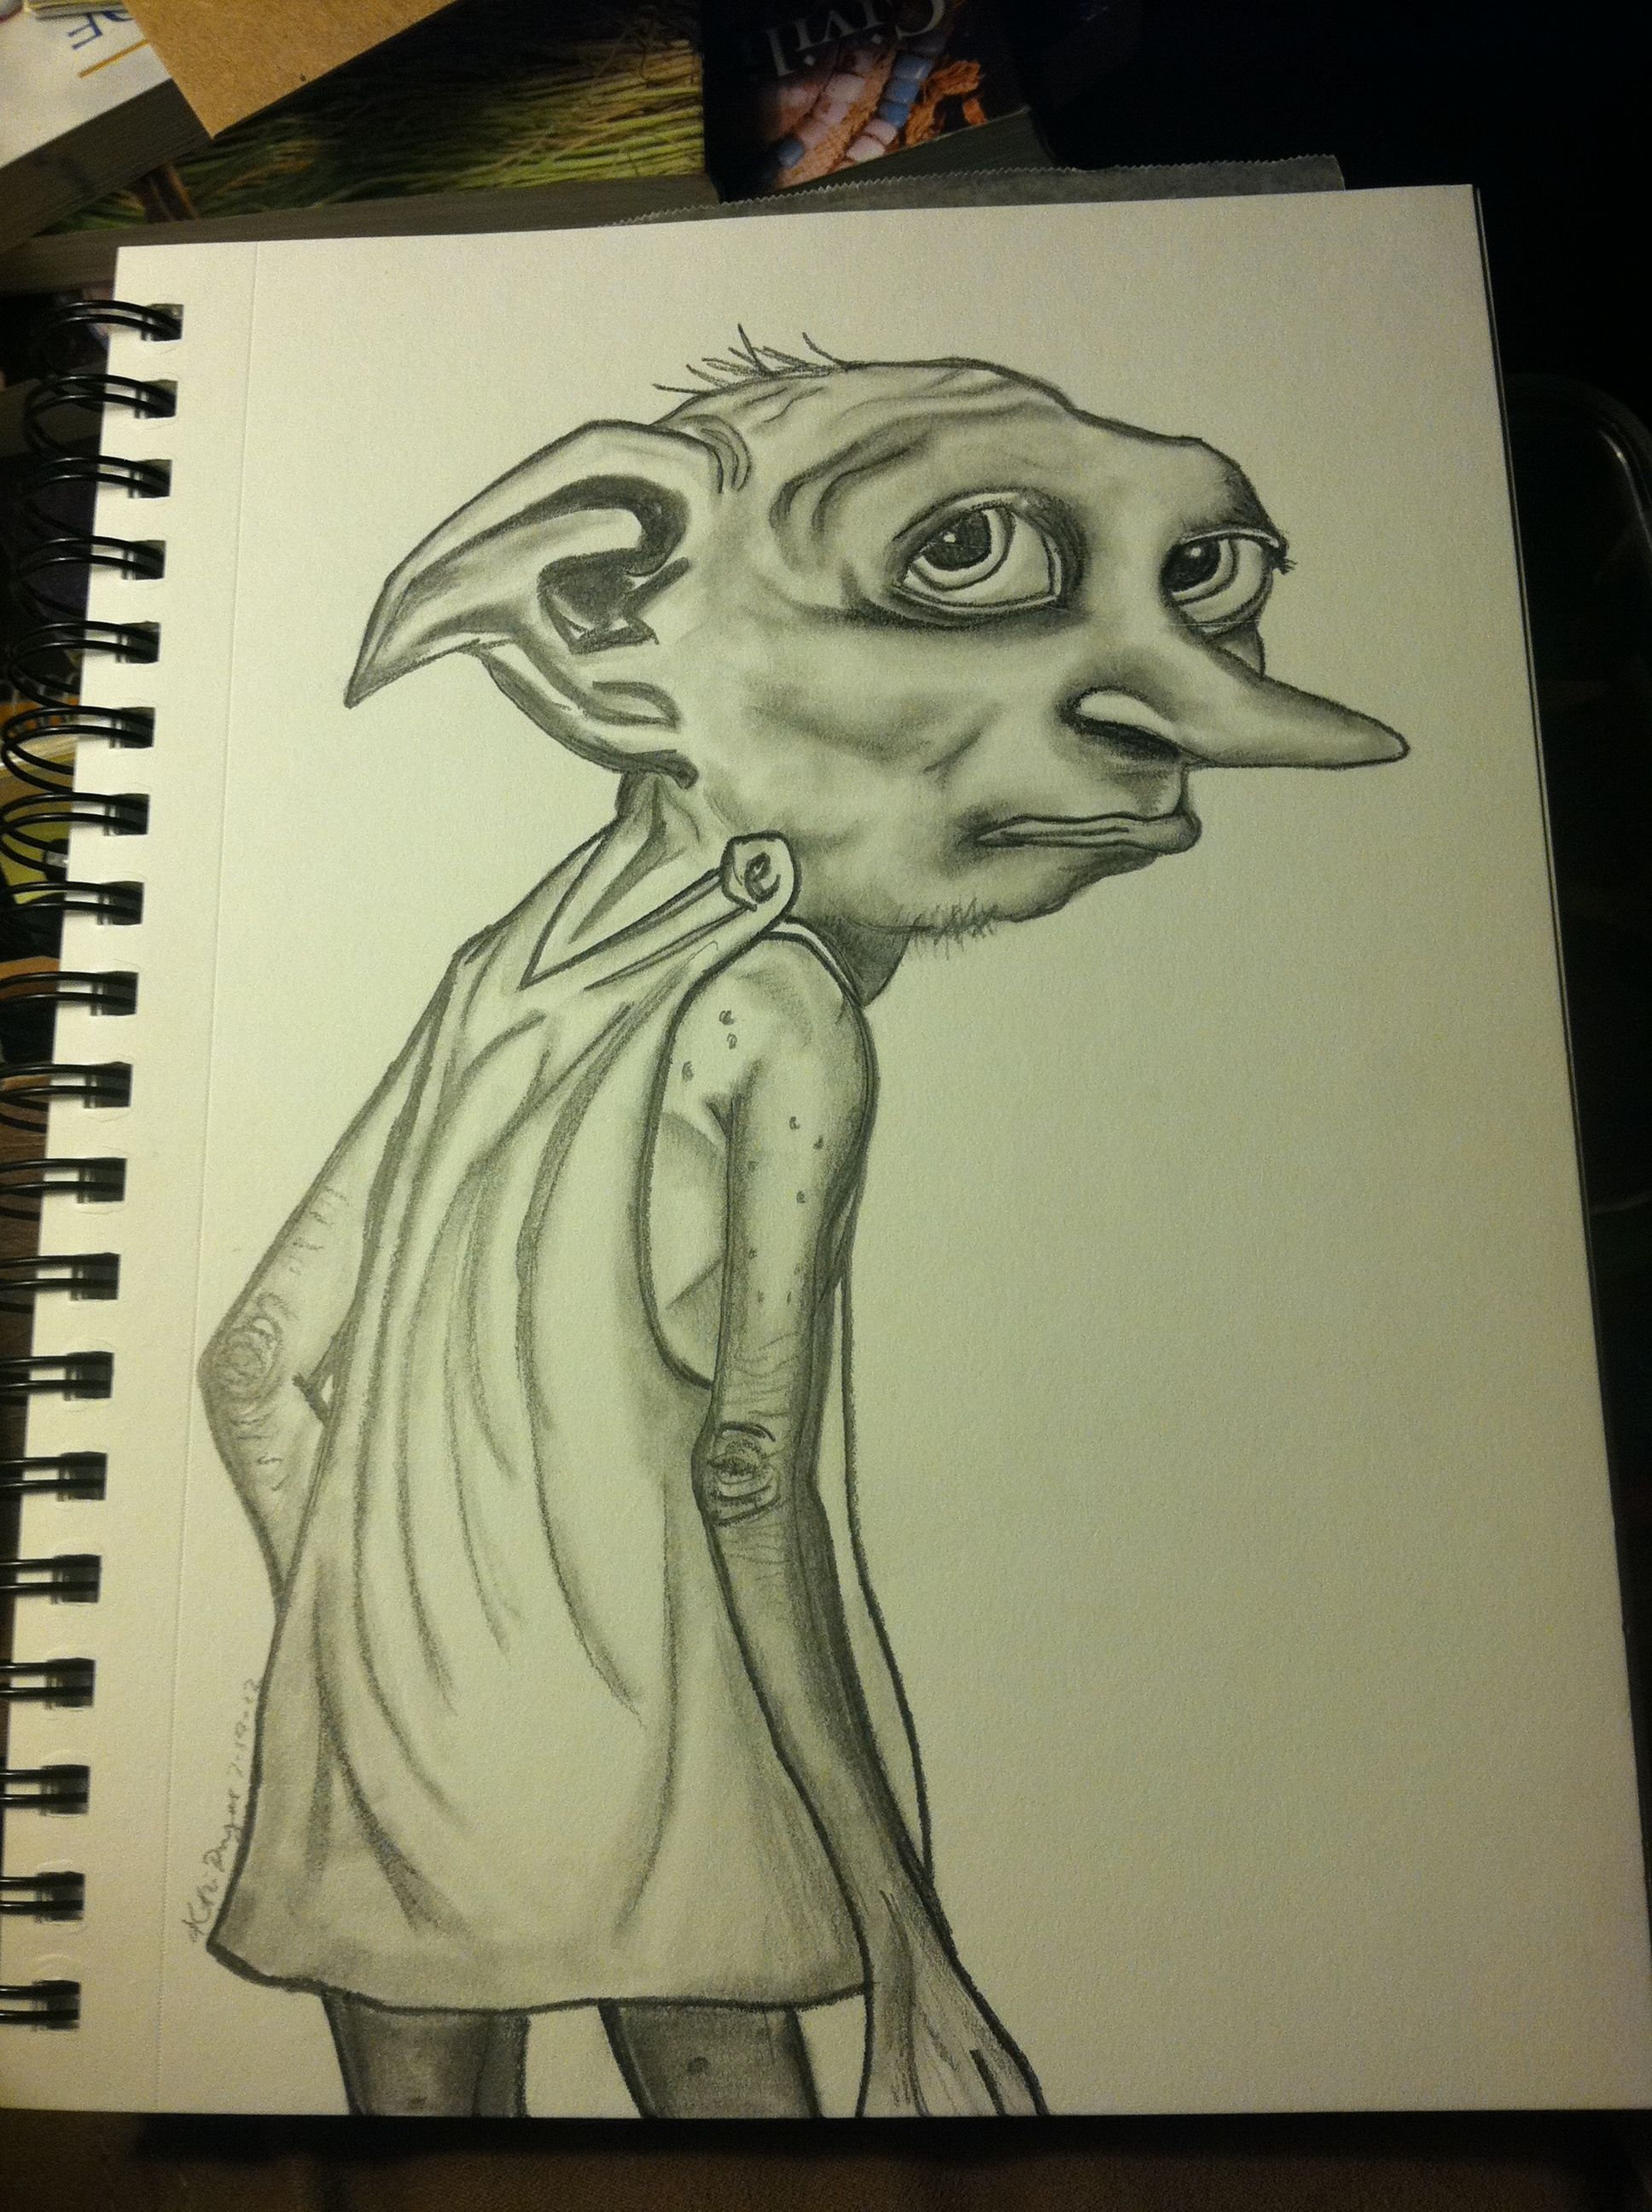 my pencil drawing of the dobby character from harry potter